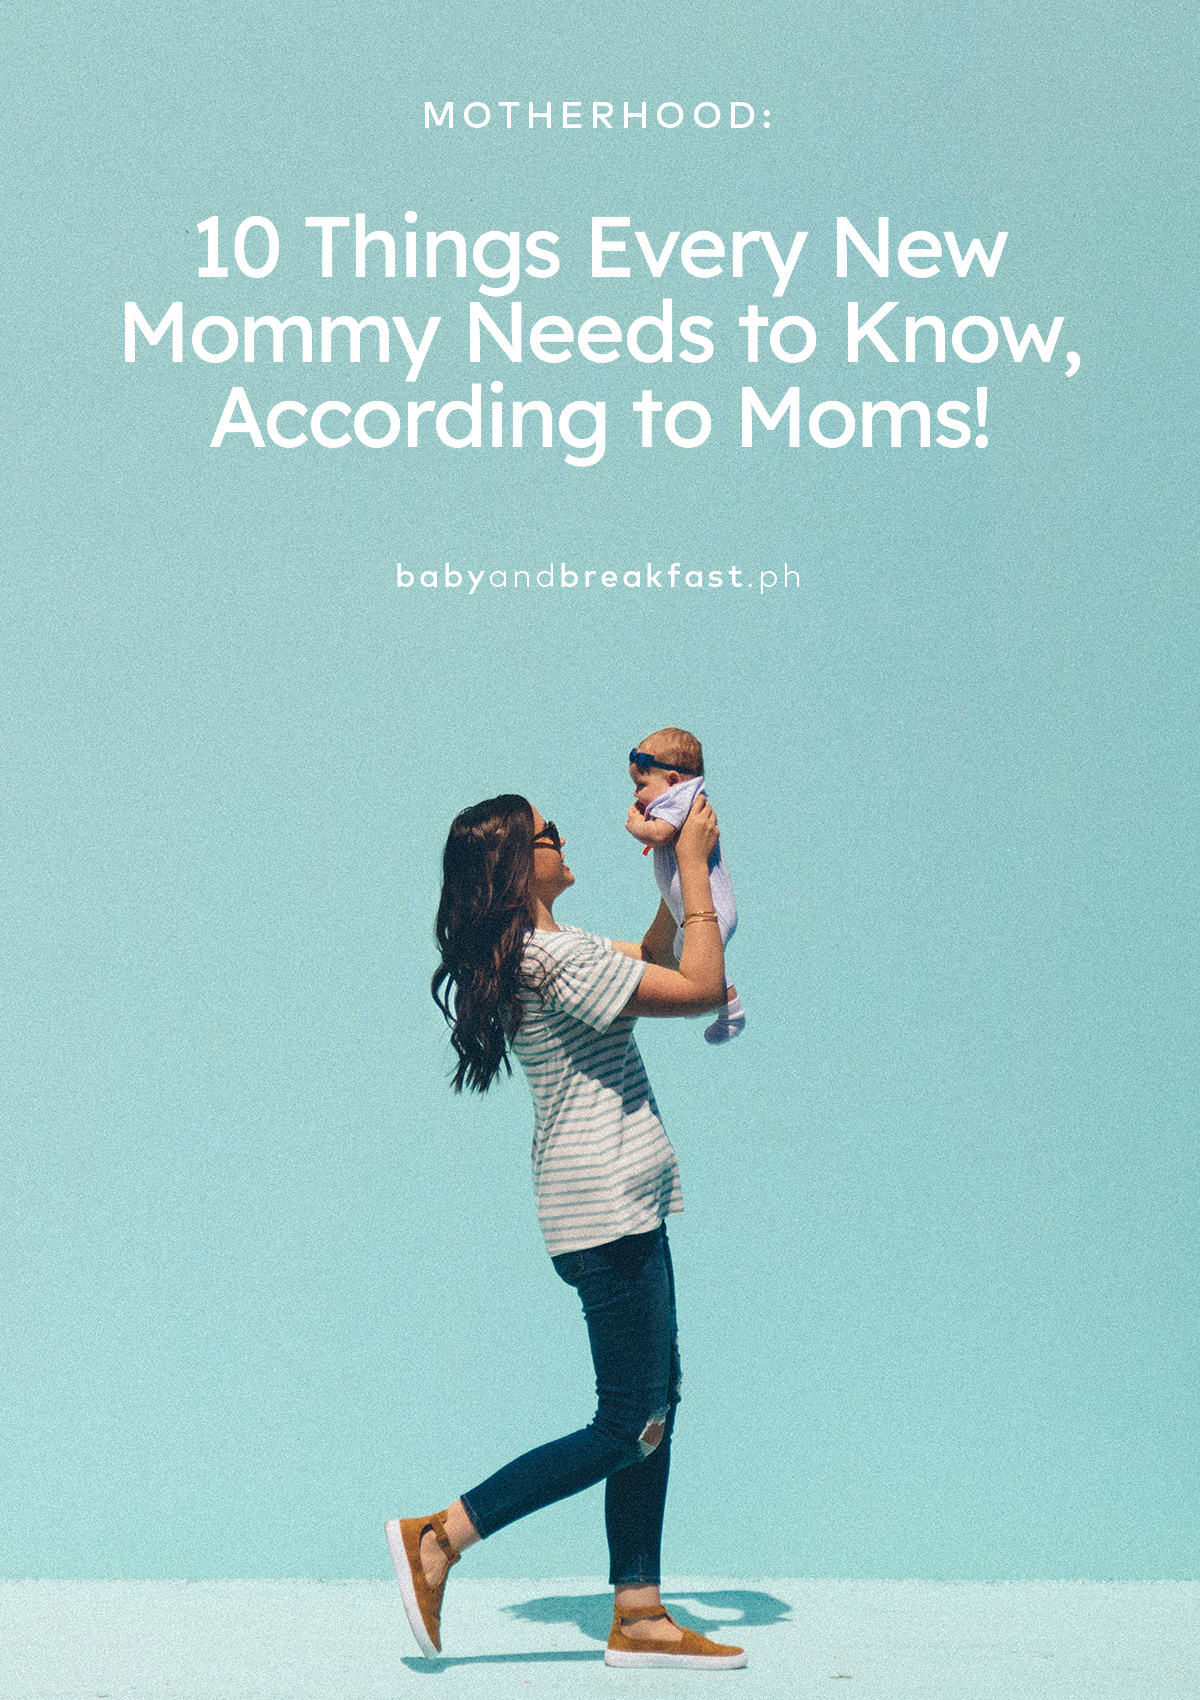 10 Things Every New Mommy Needs to Know, According to Moms!